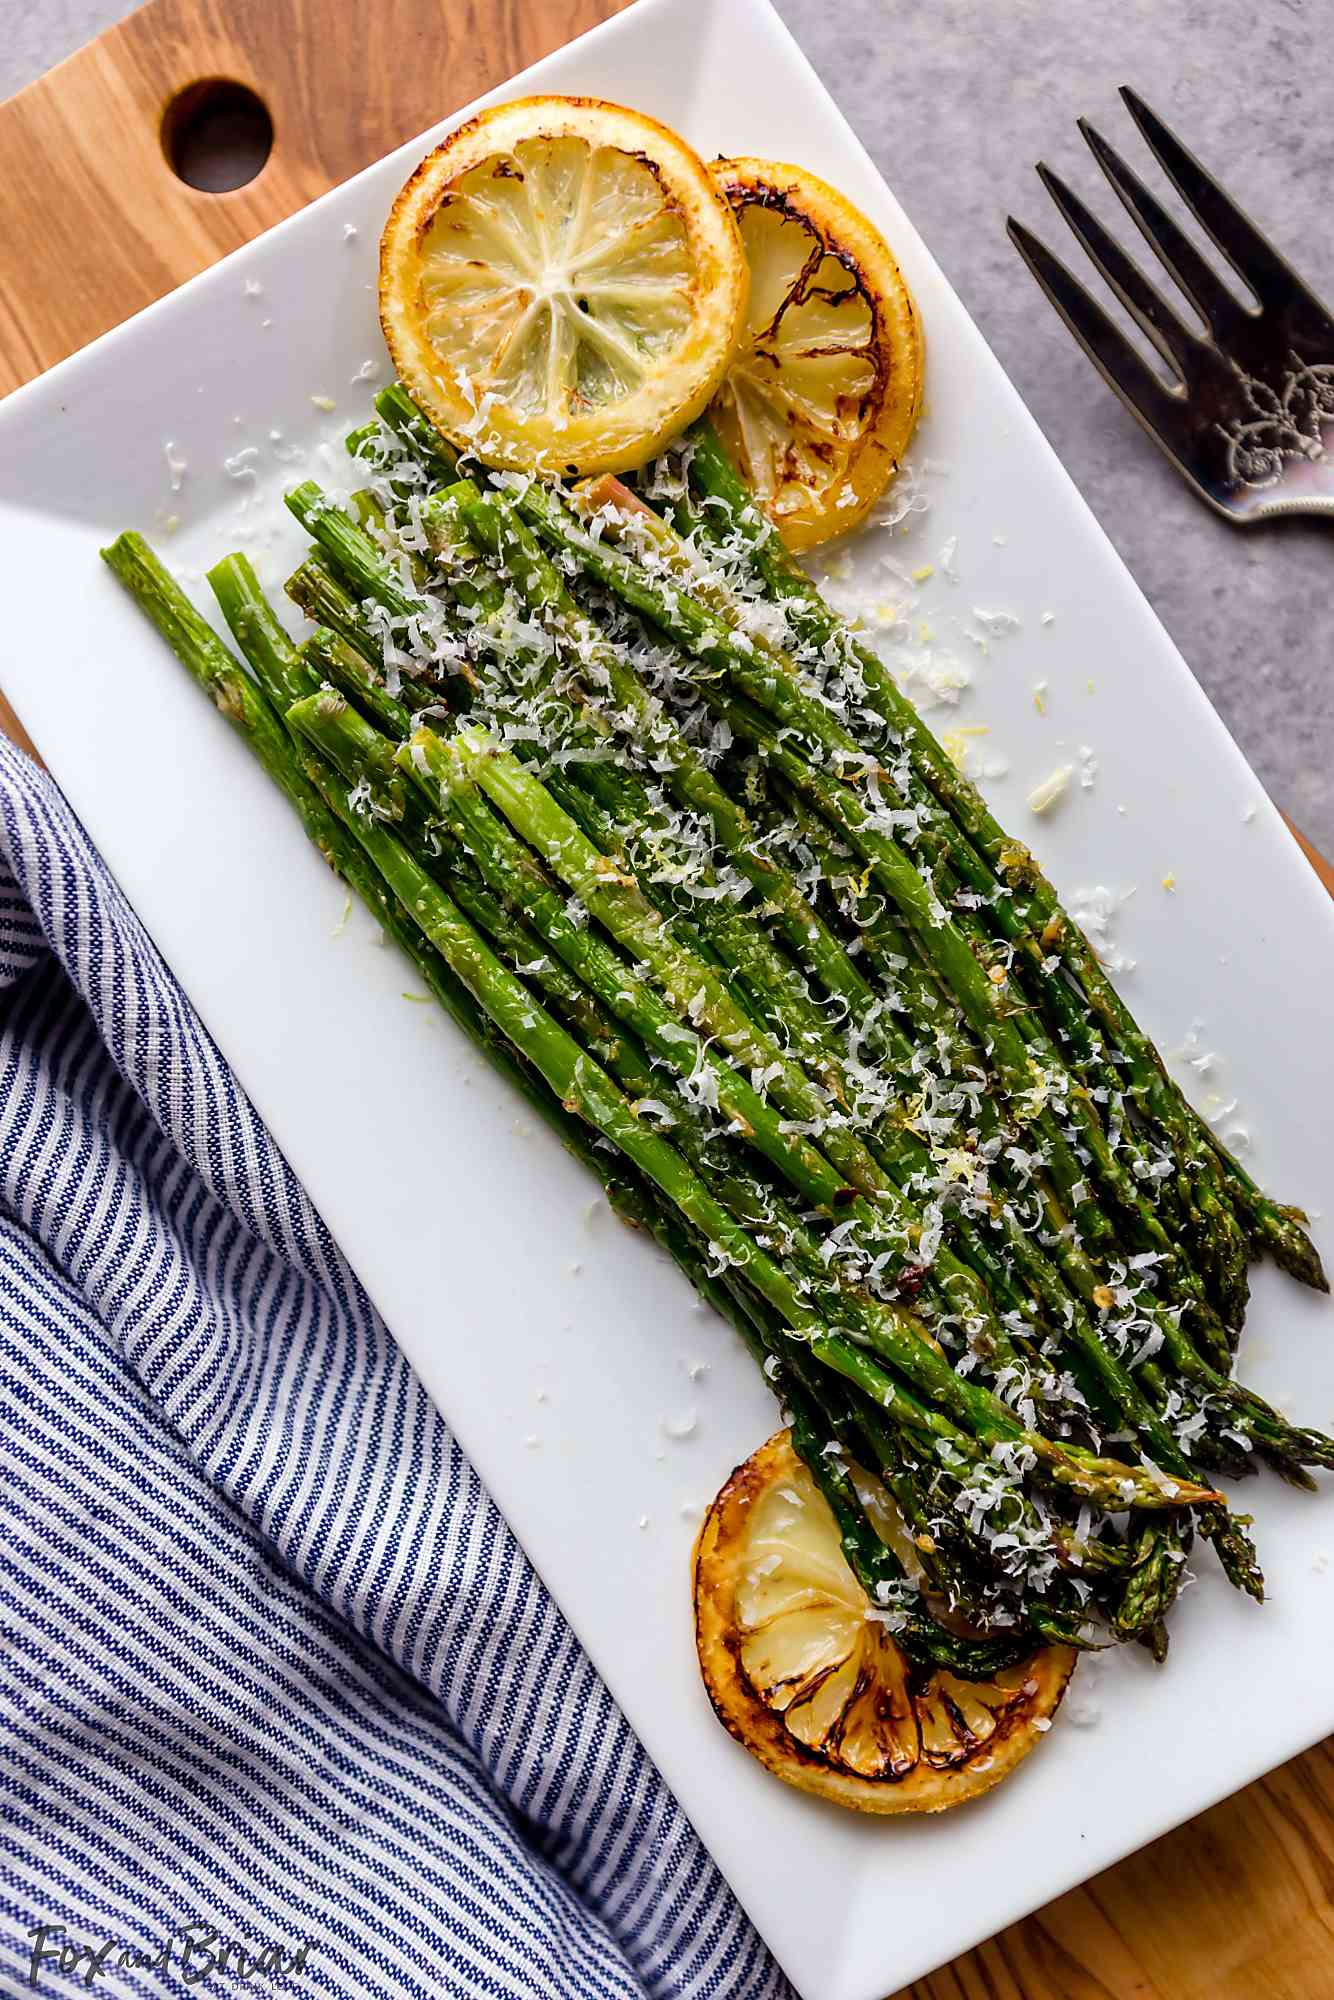 Oven Roasted Asparagus with Garlic, Lemon and Parmesan